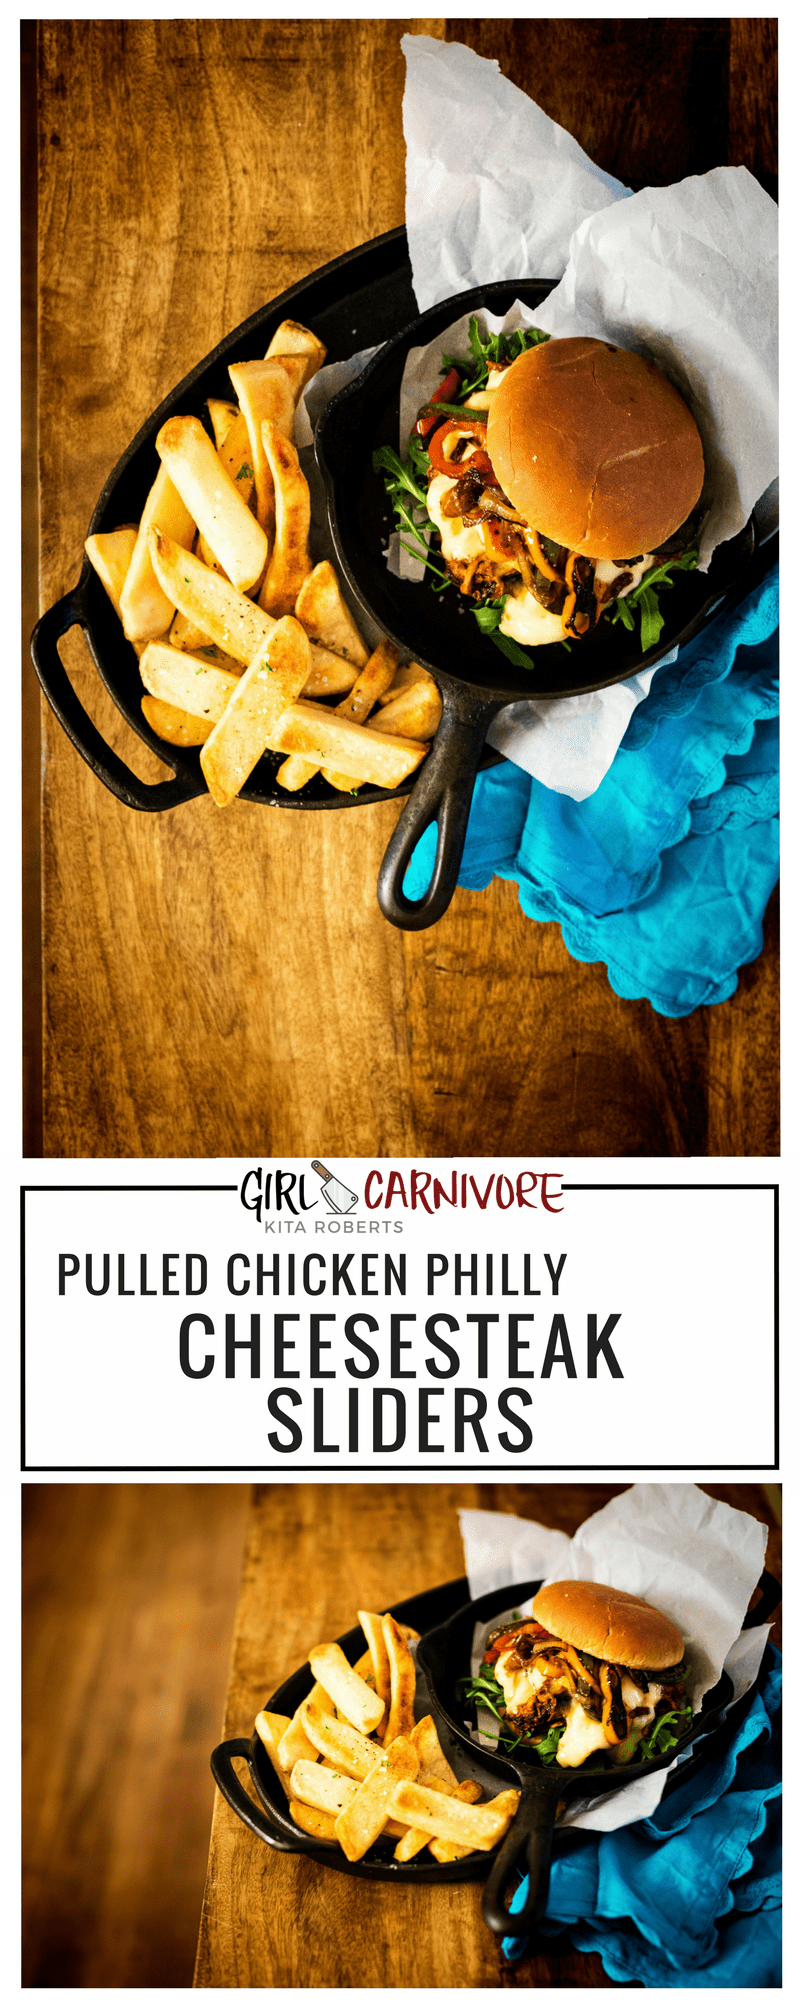 Philly Chicken Cheesesteak Sliders Recipe | Kita Roberts GirlCarnivore